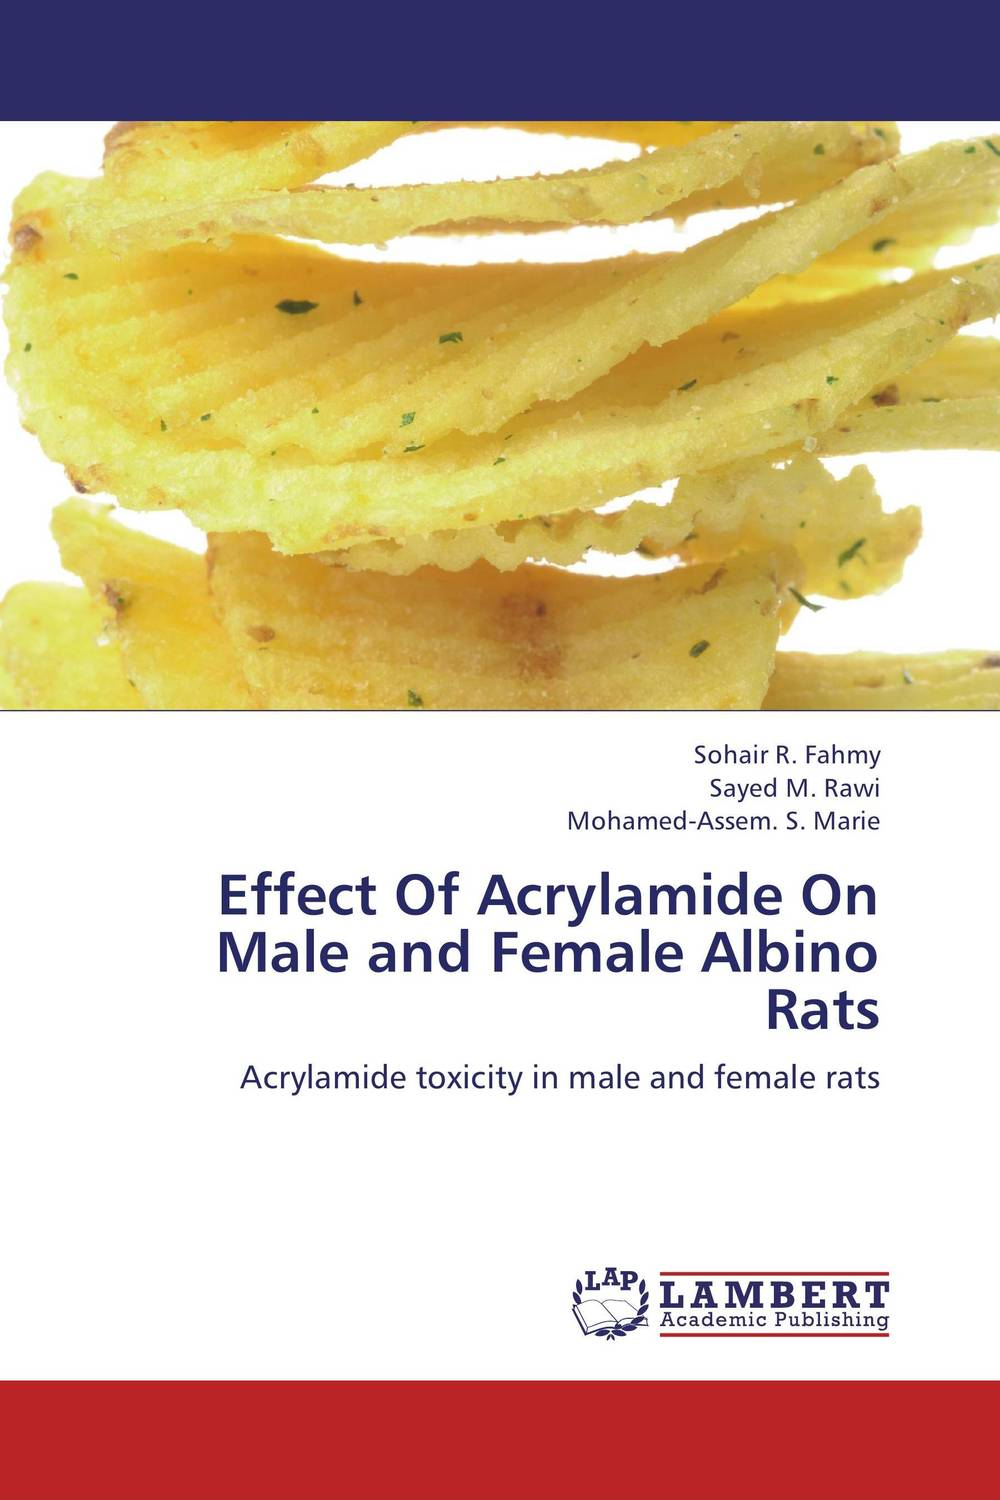 Effect Of Acrylamide On  Male and Female Albino Rats nutritional effects and biochemical studies of food on rats